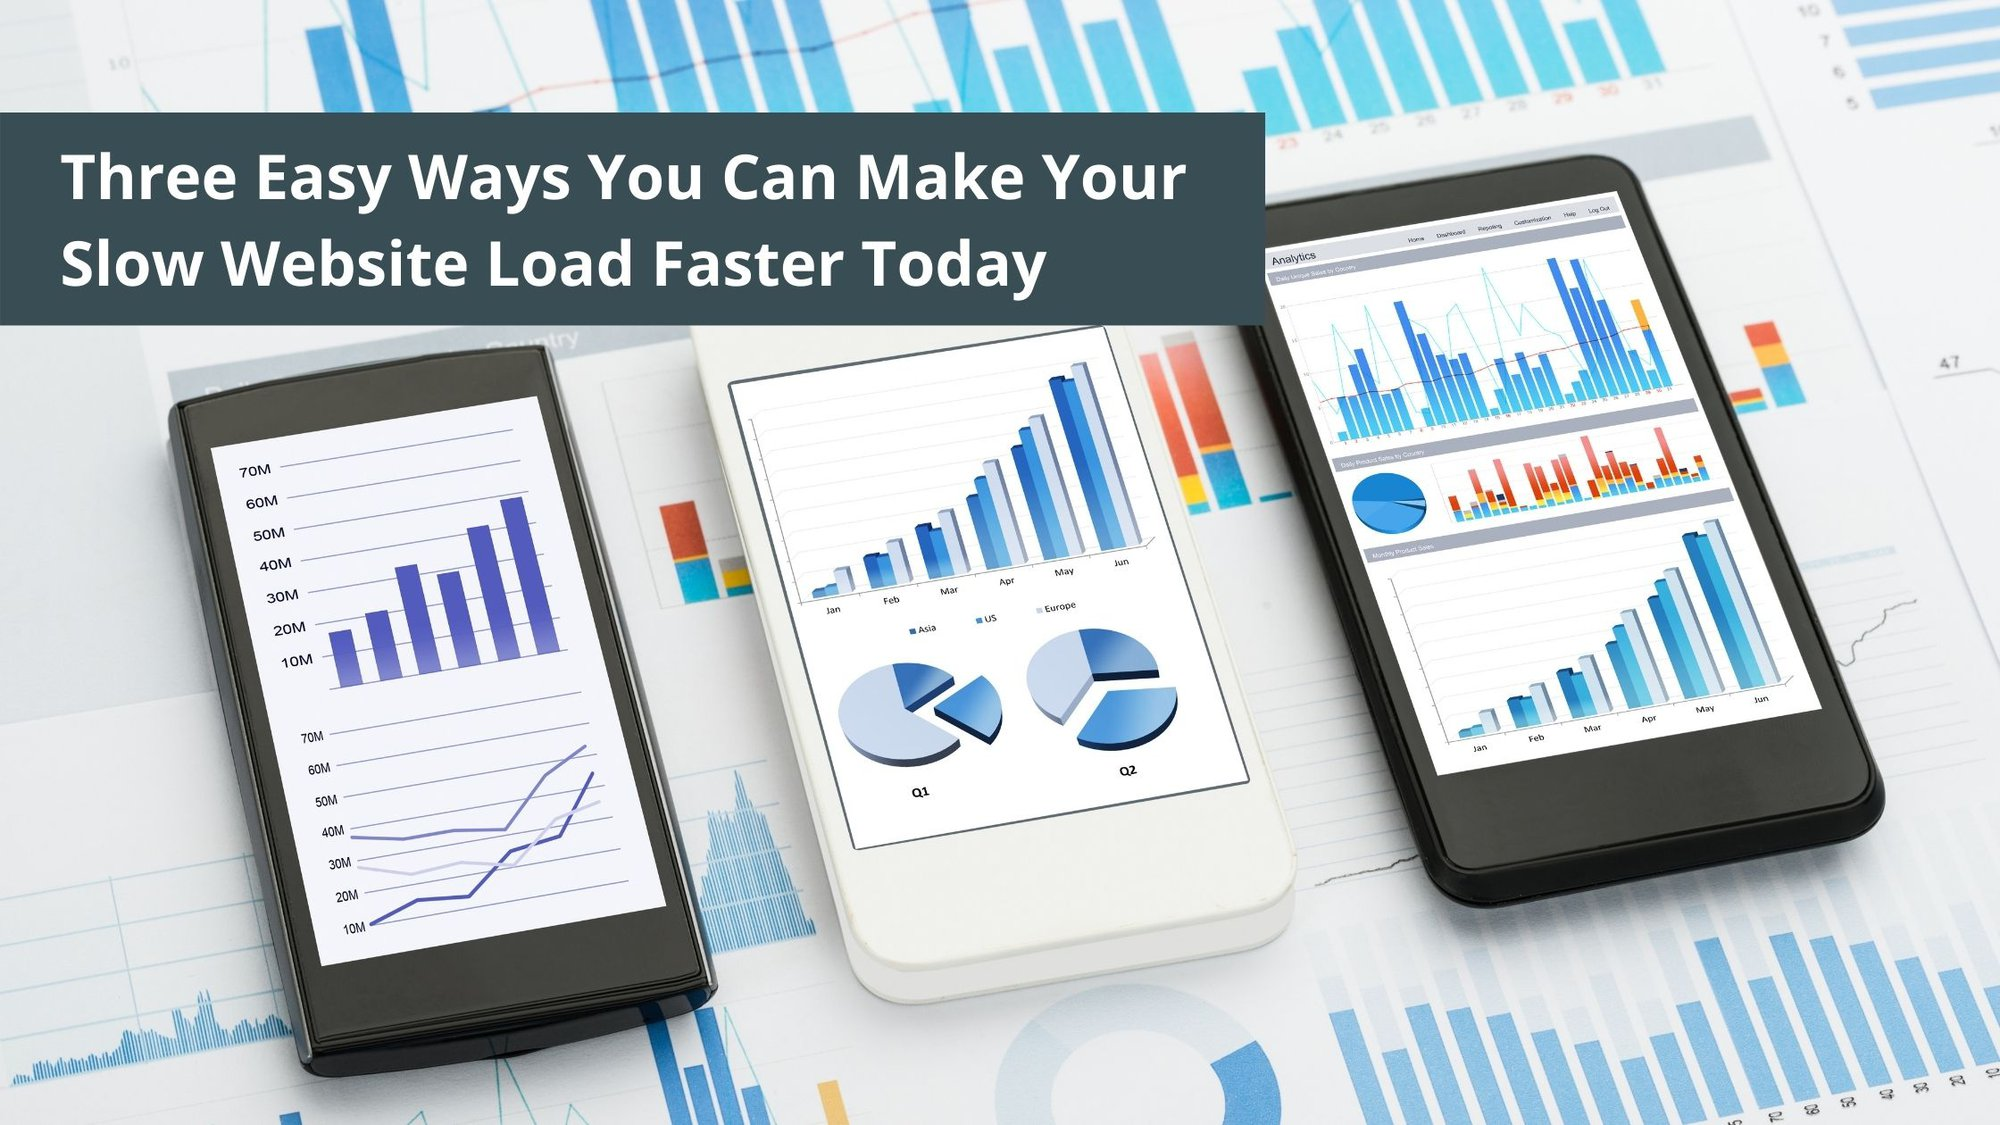 Three Easy Ways You Can Make Your Slow Website Load Faster Today